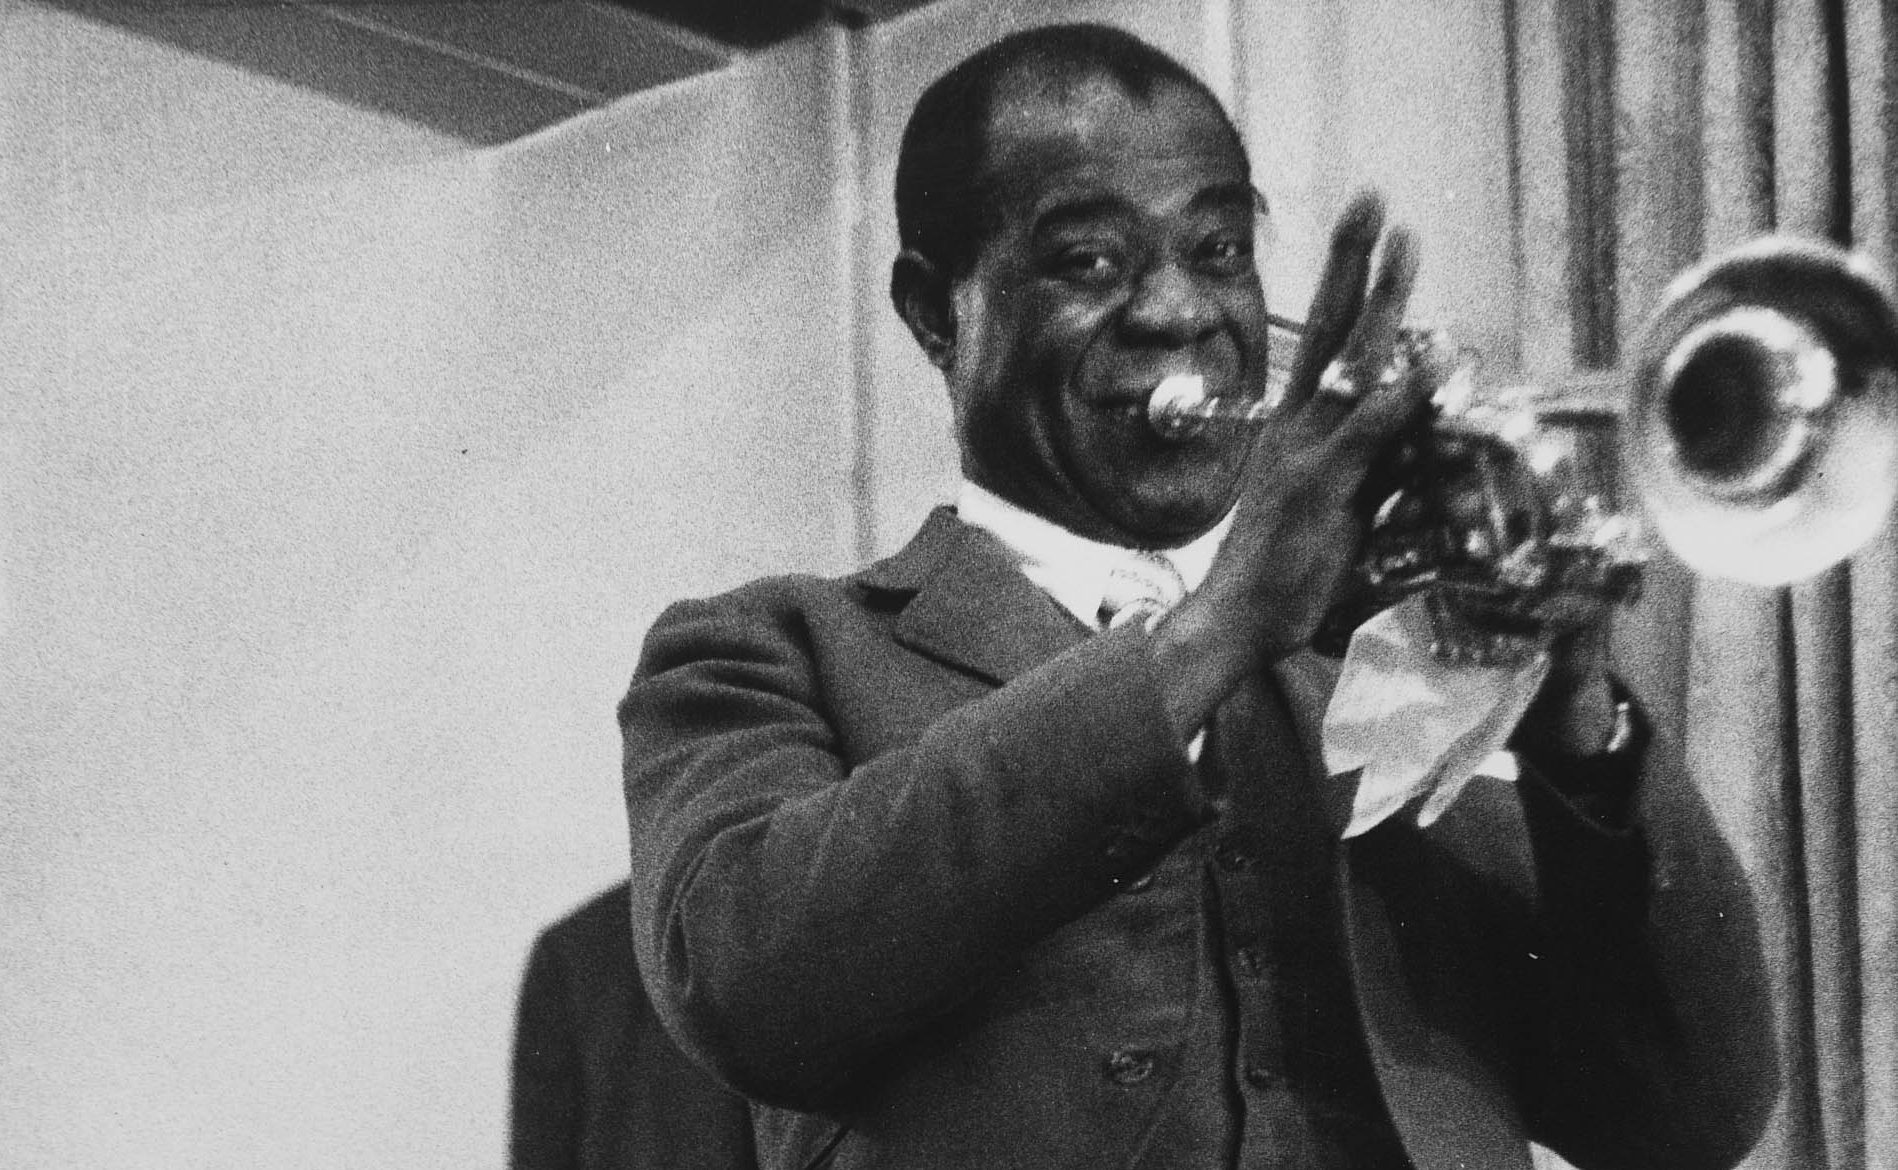 A photo of Louis Armstrong by Michael Peto.